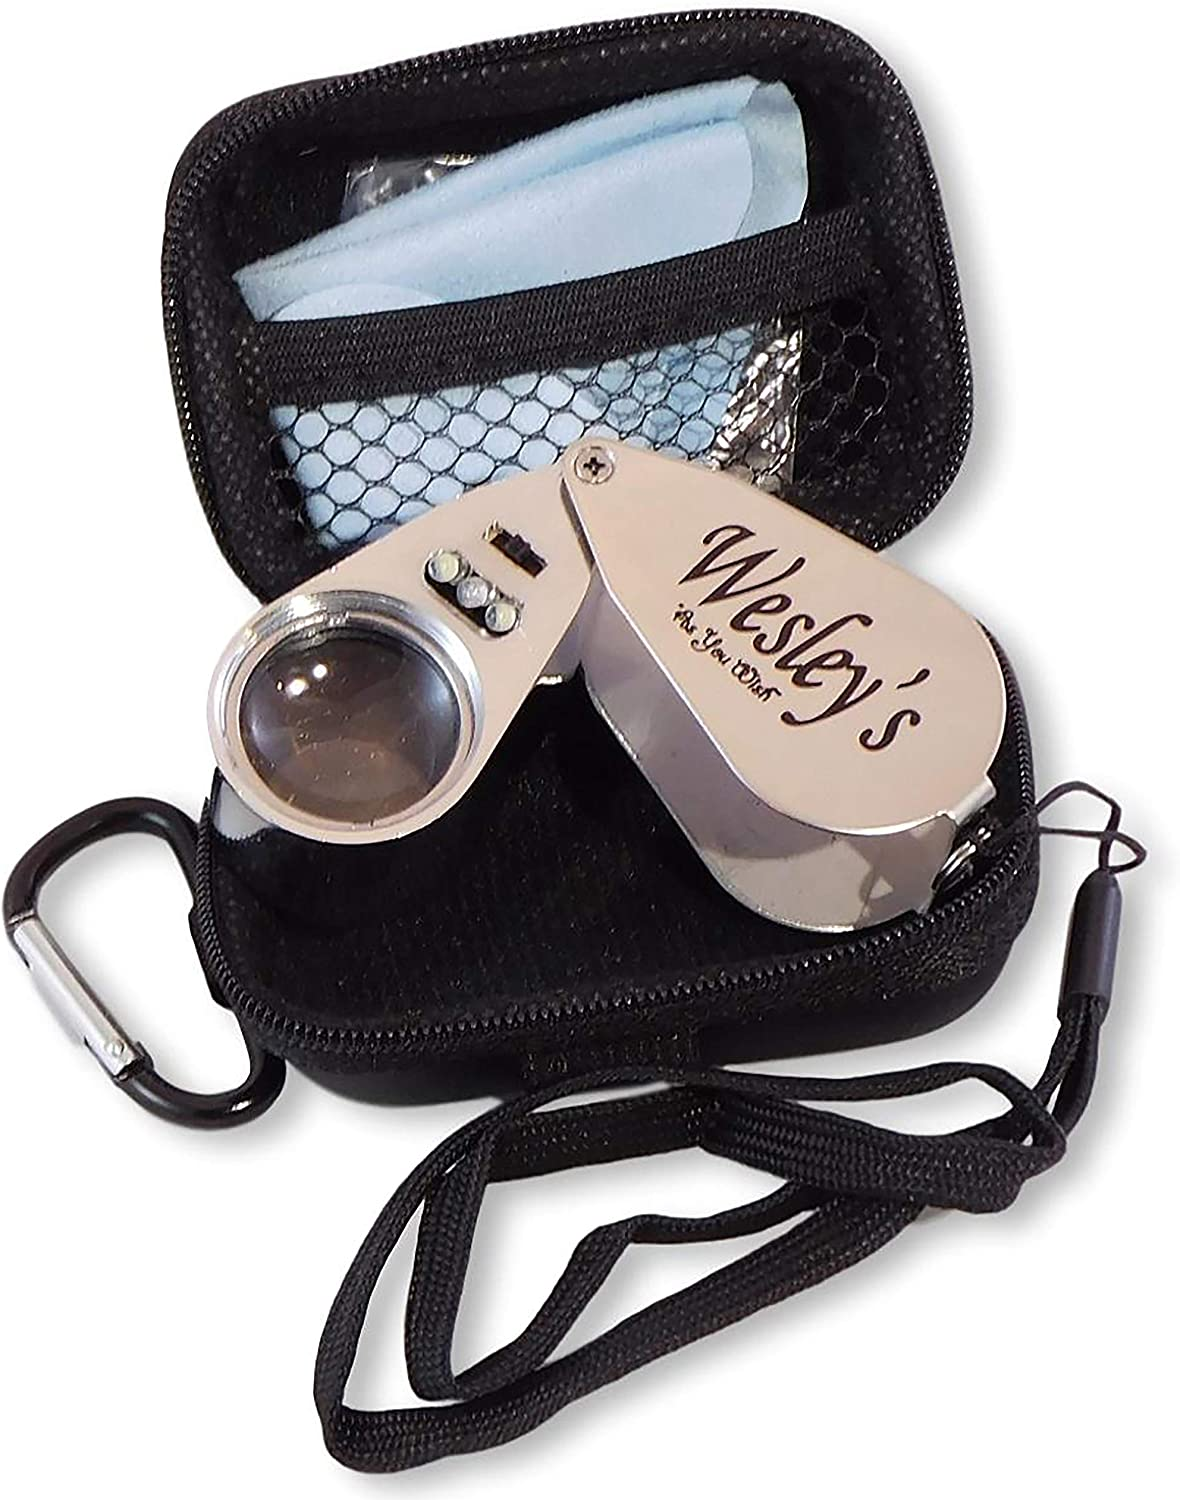 40X Jewelers Loupe Magnifier Hand Illuminated UV Lens LED A OFFicial mail order surprise price is realized Jewelr